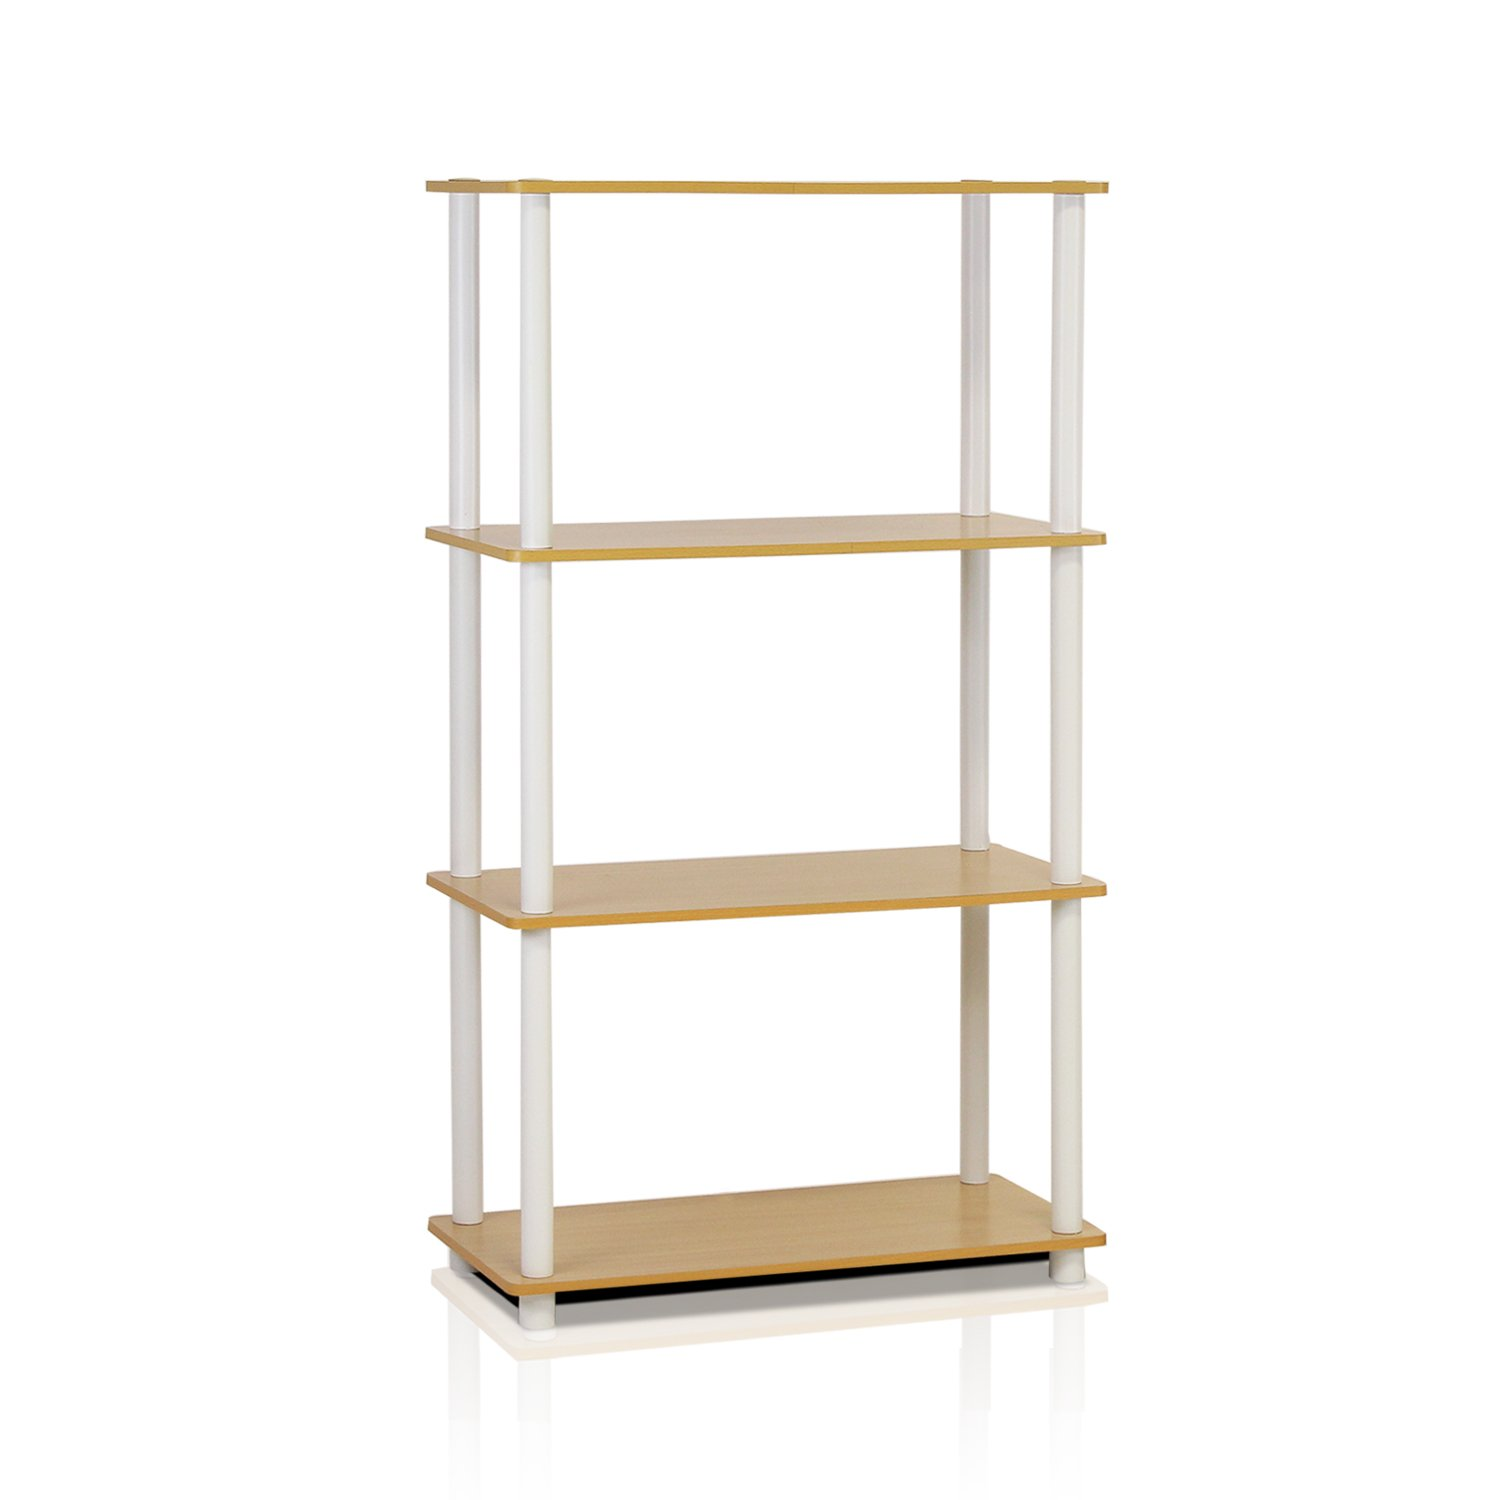 Furinno (99557BE/WH) Turn-N-Tube 4-Tier Multipurpose Shelf Display Rack - Beech/White by Furinno (Image #1)